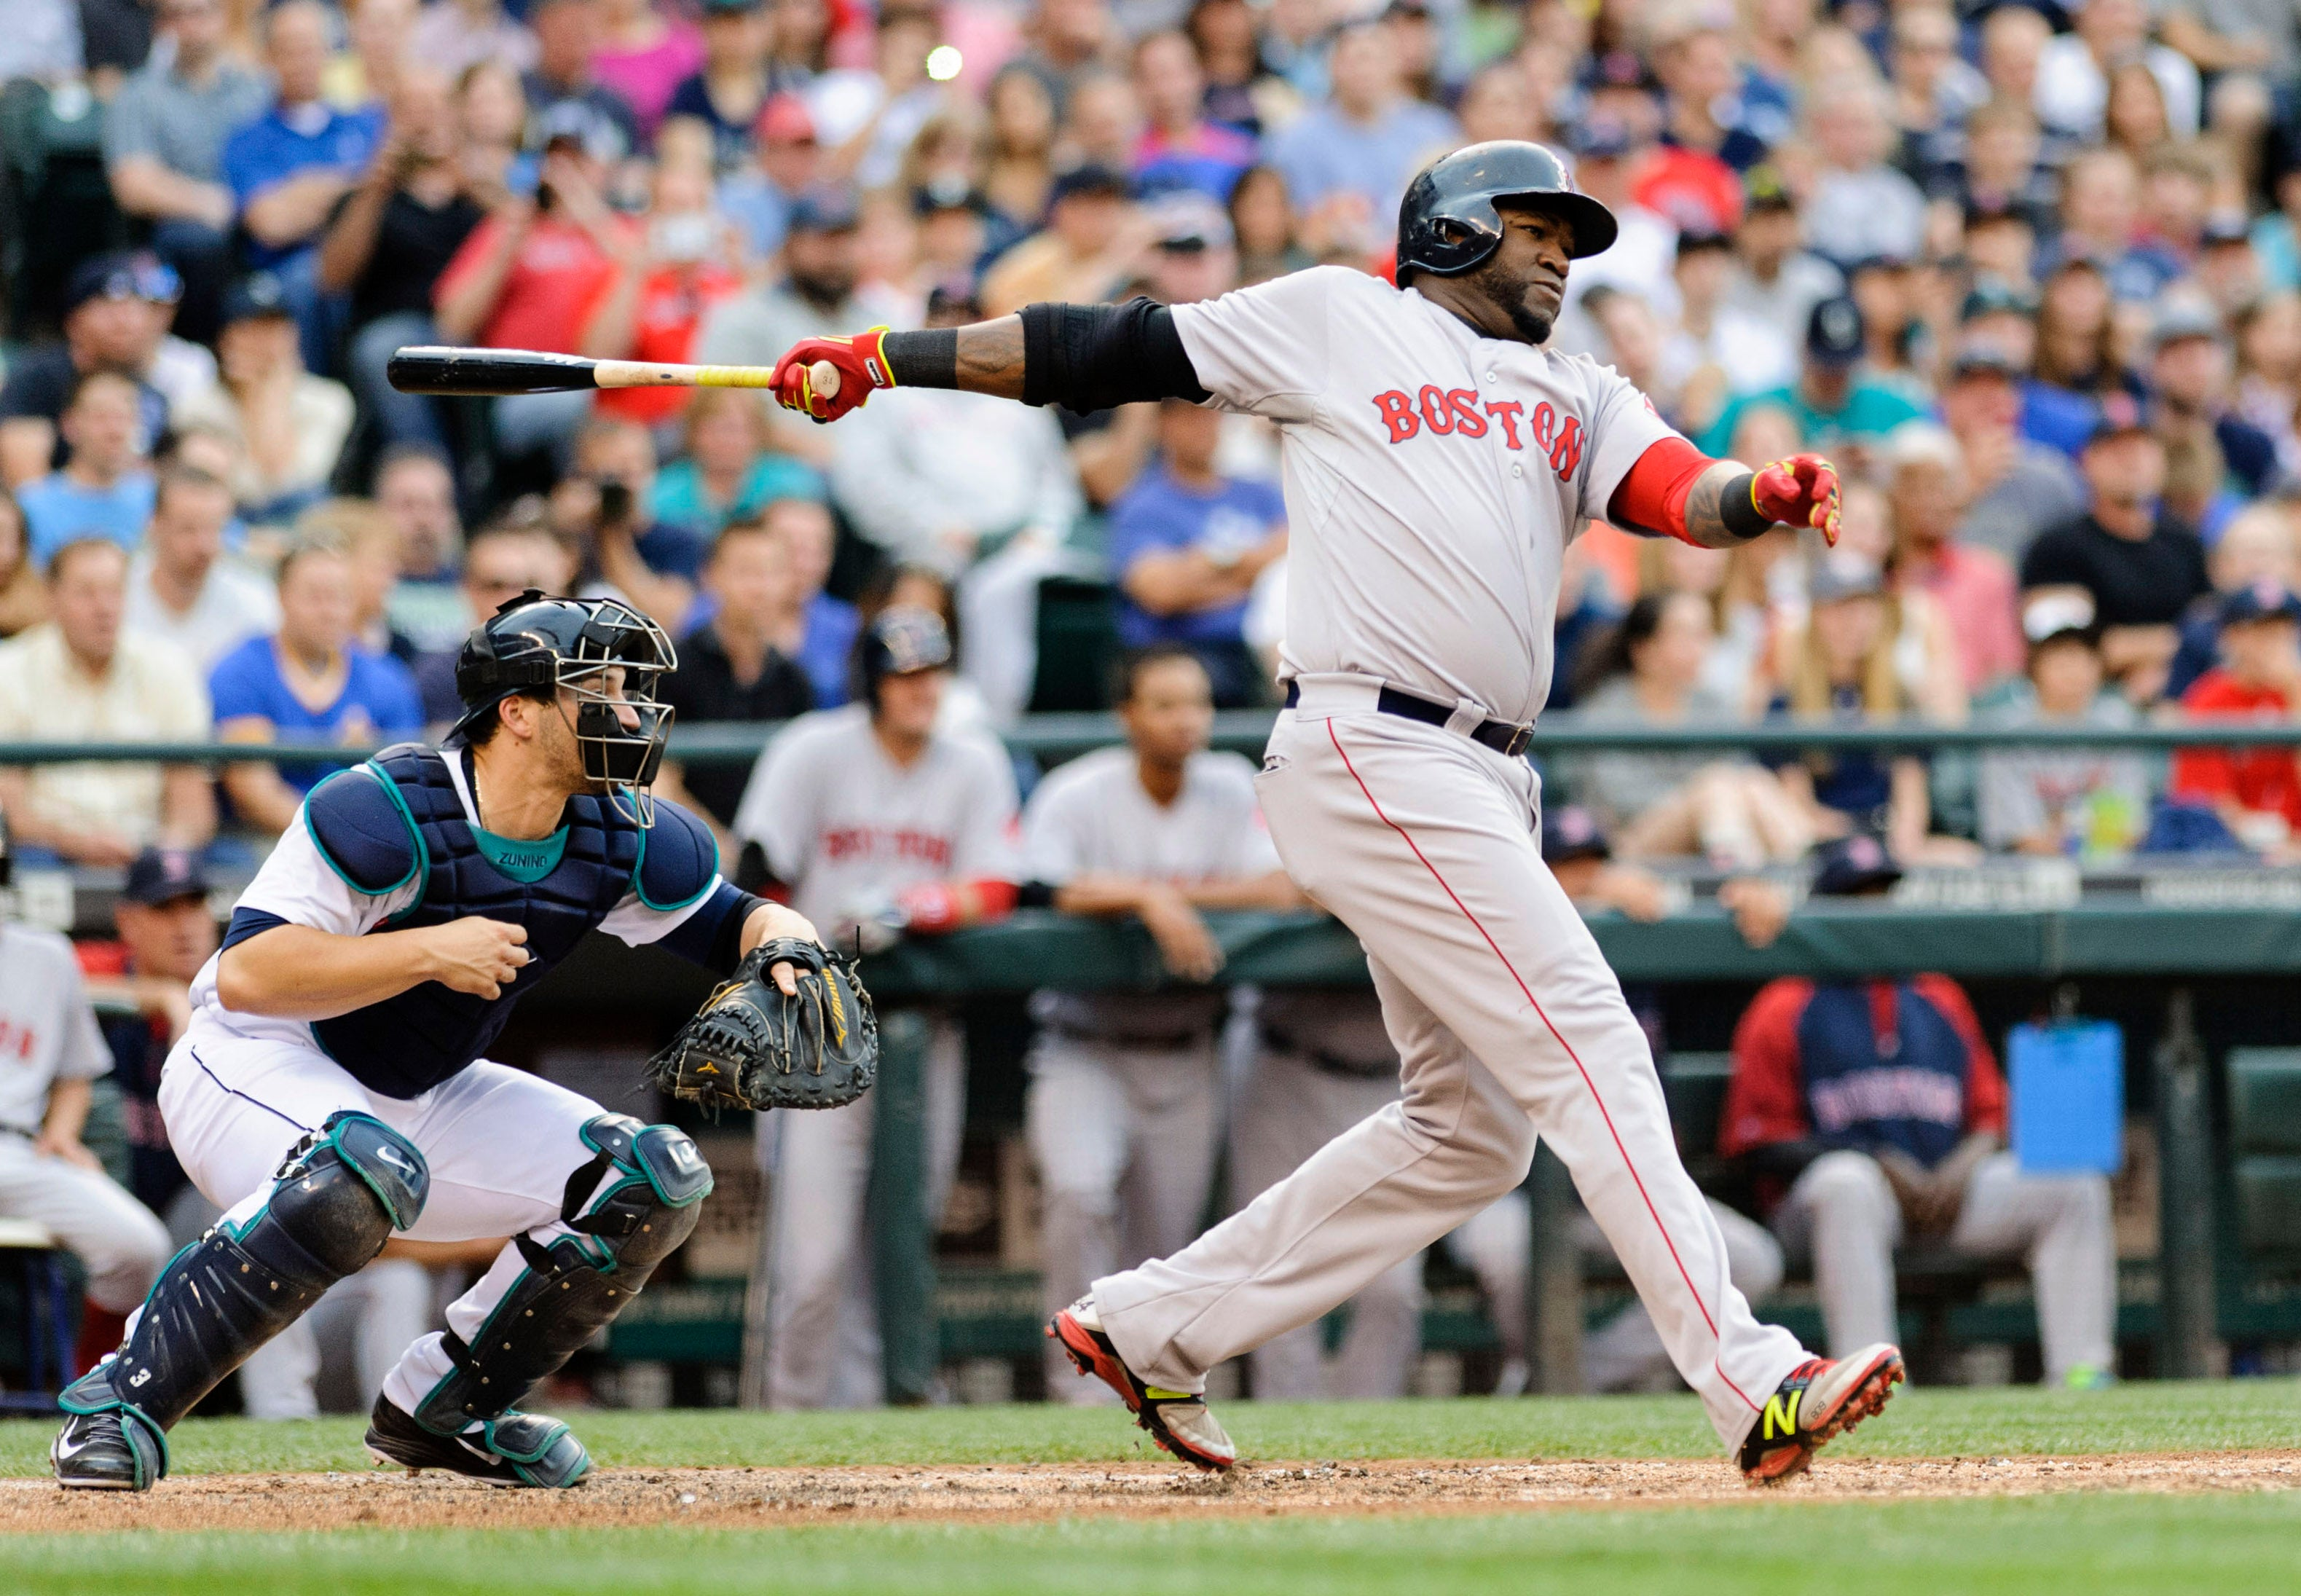 2014-06-26T031523Z_2130904639_NOCID_RTRMADP_3_MLB-BOSTON-RED-SOX-AT-SEATTLE-MARINERS.jpg